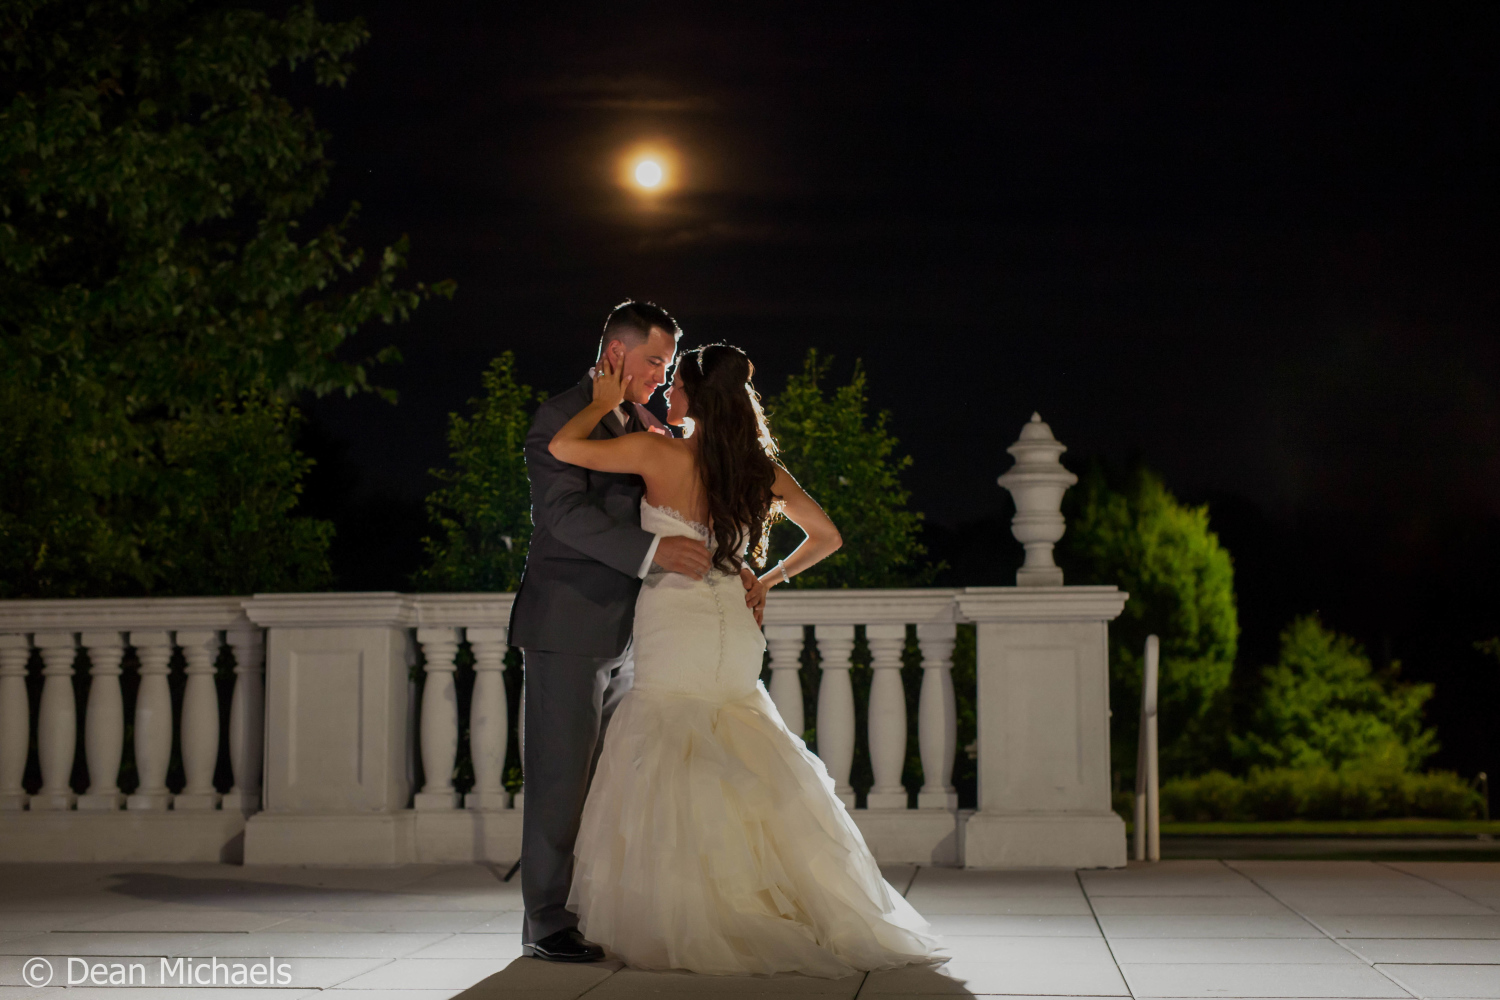 wedding-photographer-gallery-2-B50E9U50TP6C.jpg